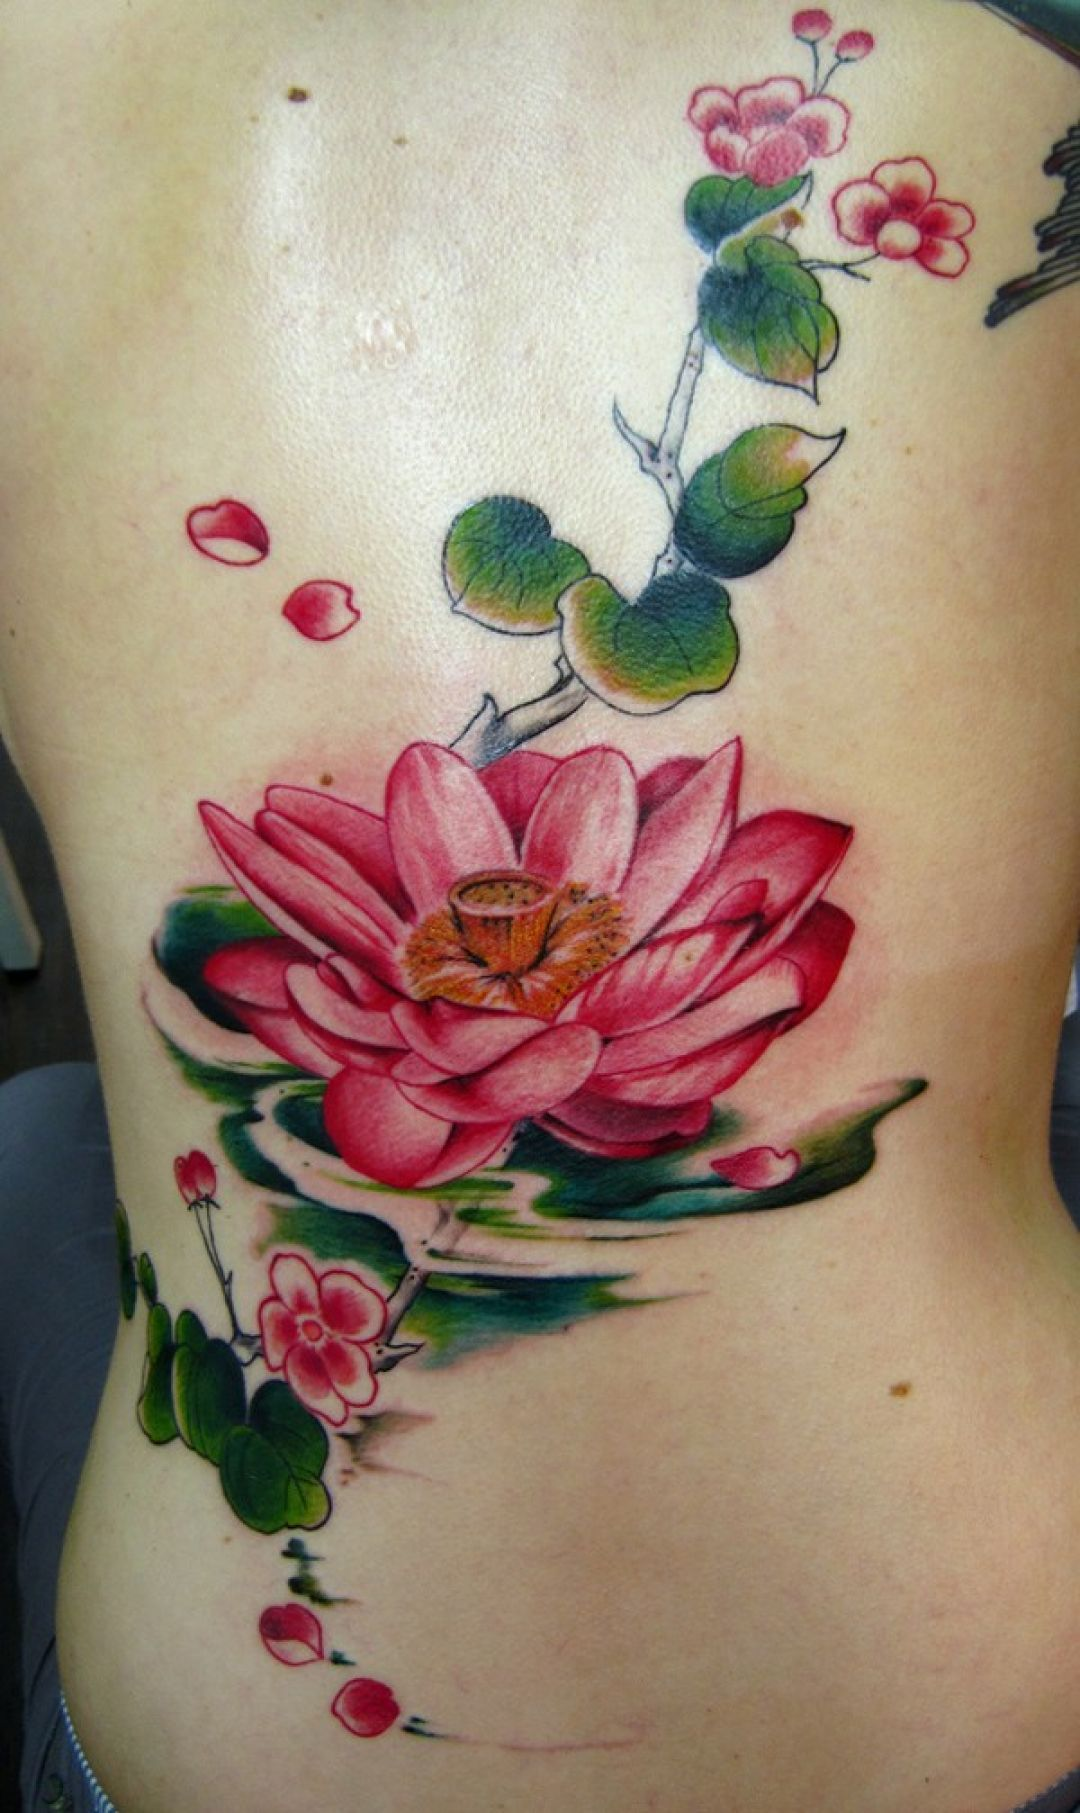 Red Lotus Ribs Tattoo Design (286306) - Best  Tattoos